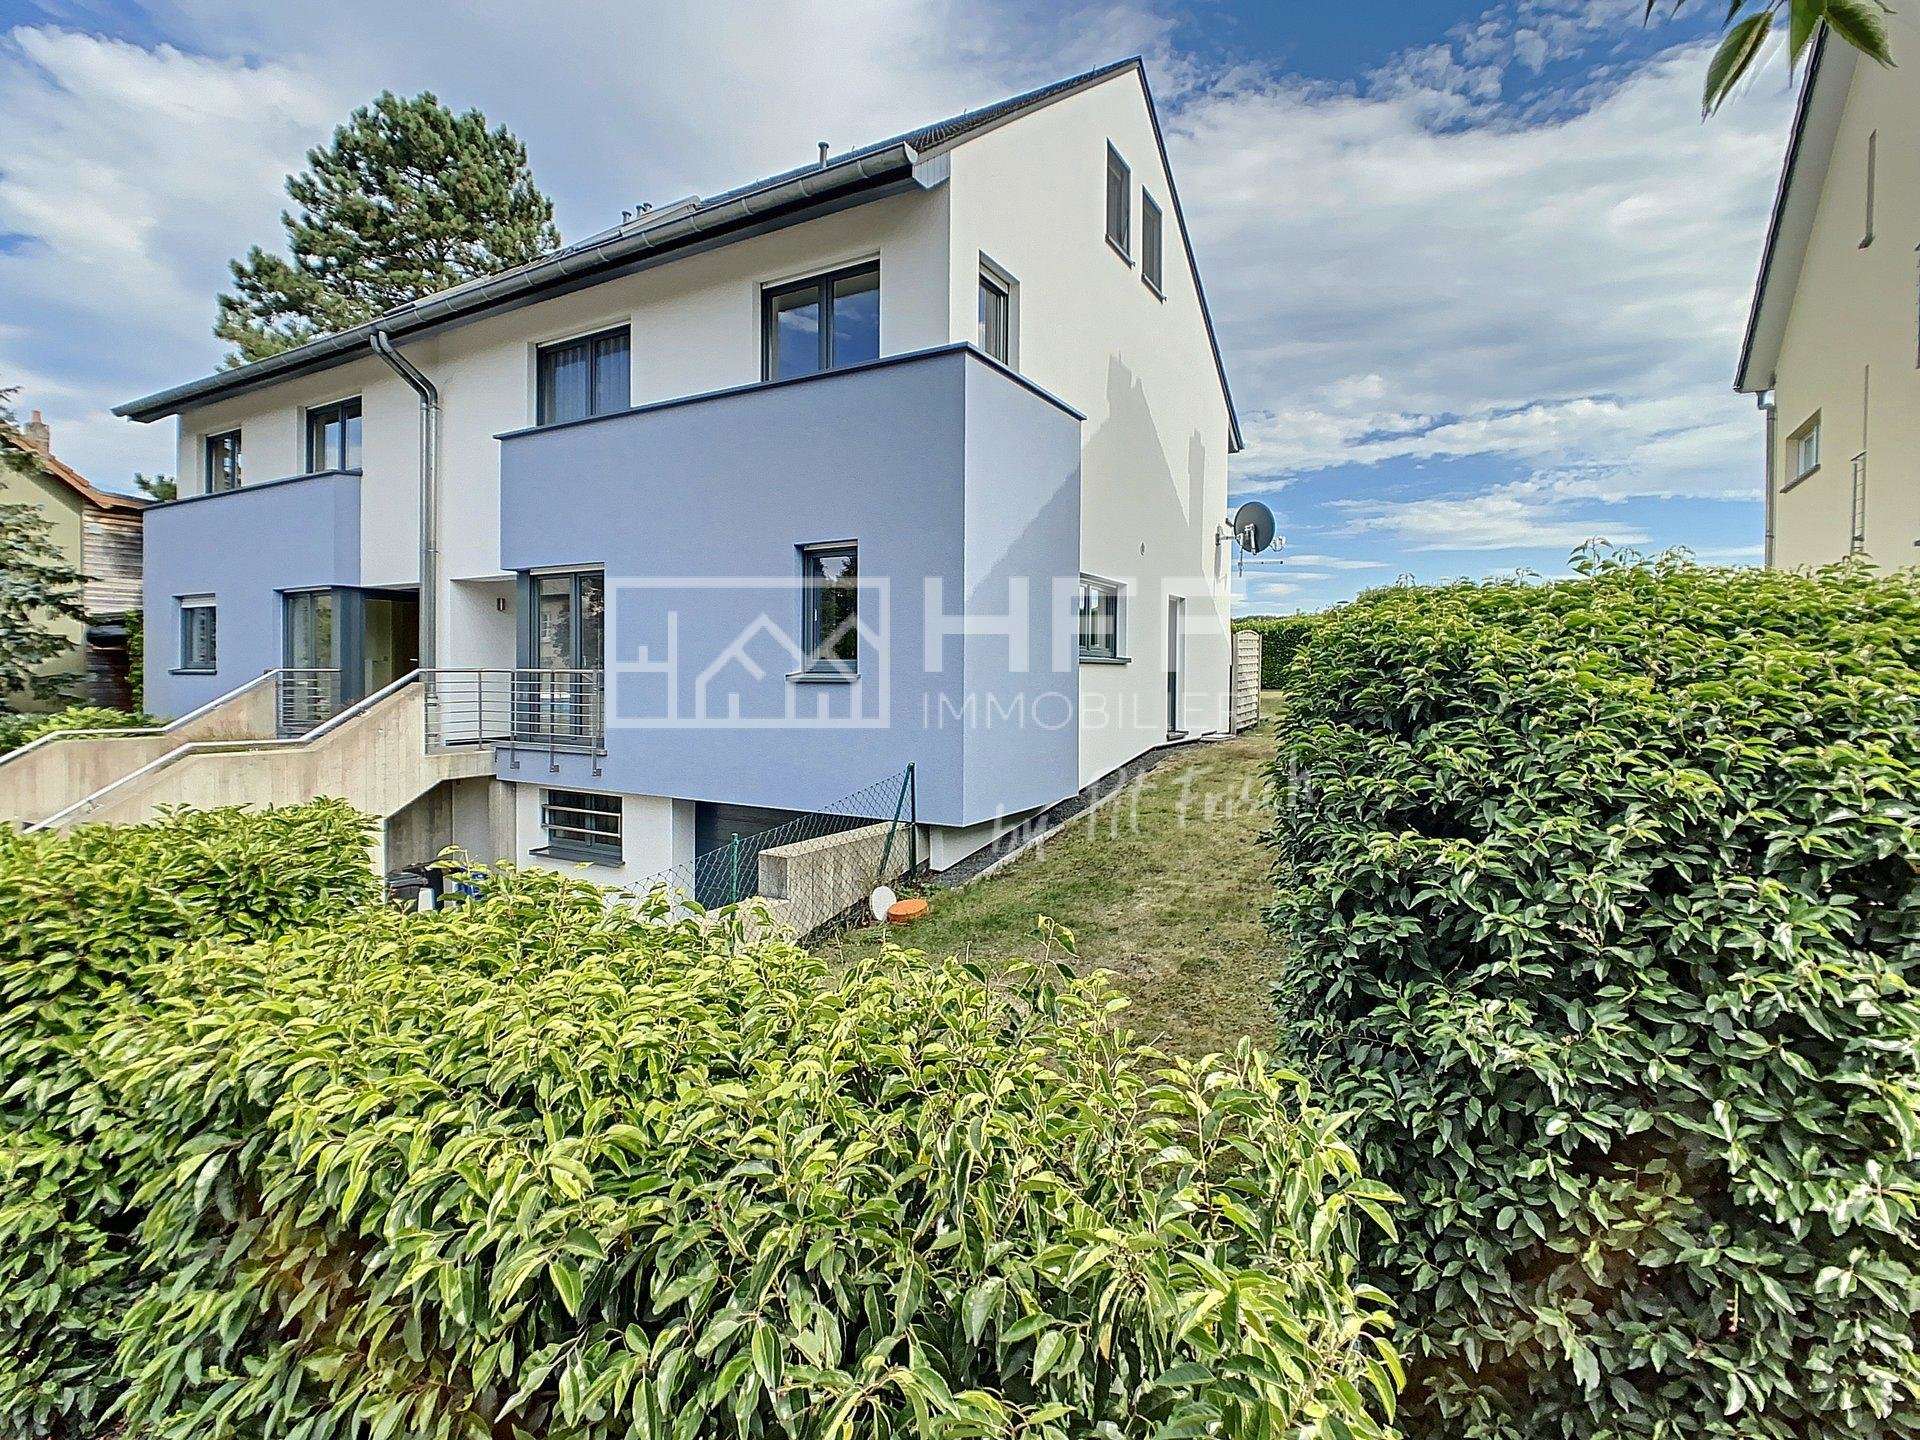 4-BEDROOM HOUSE IN BERG